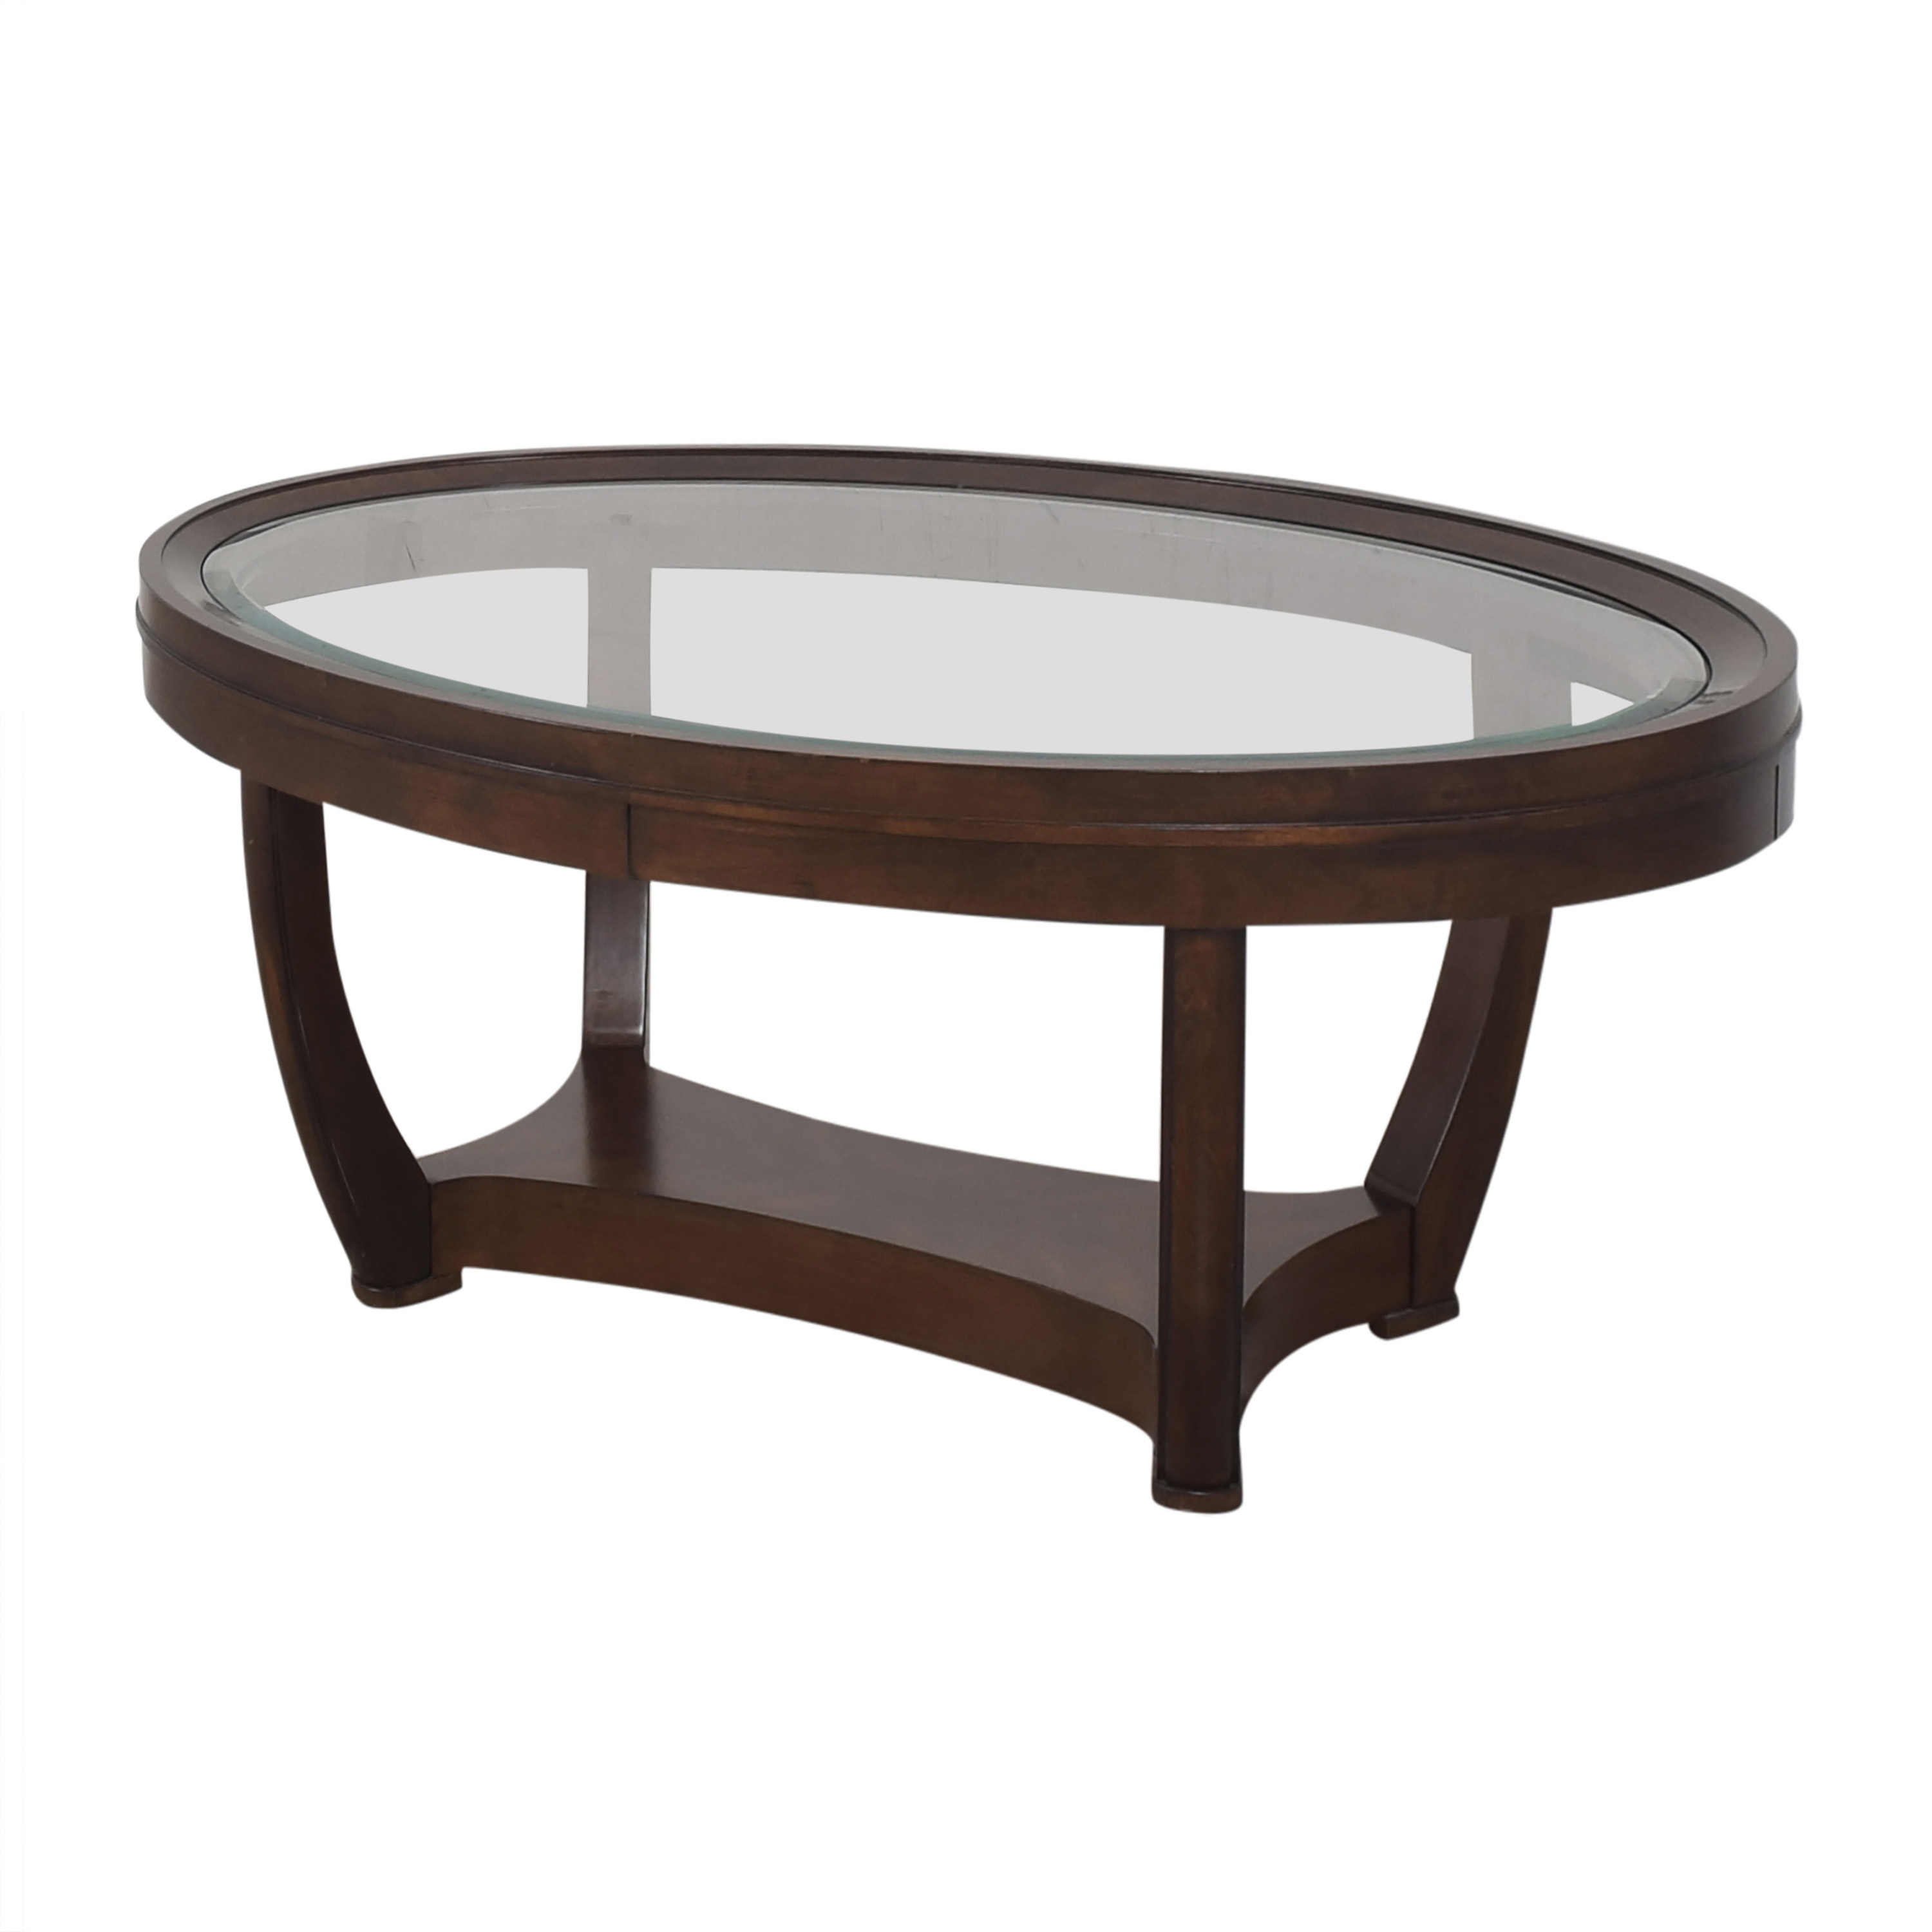 Oval Coffee Table second hand